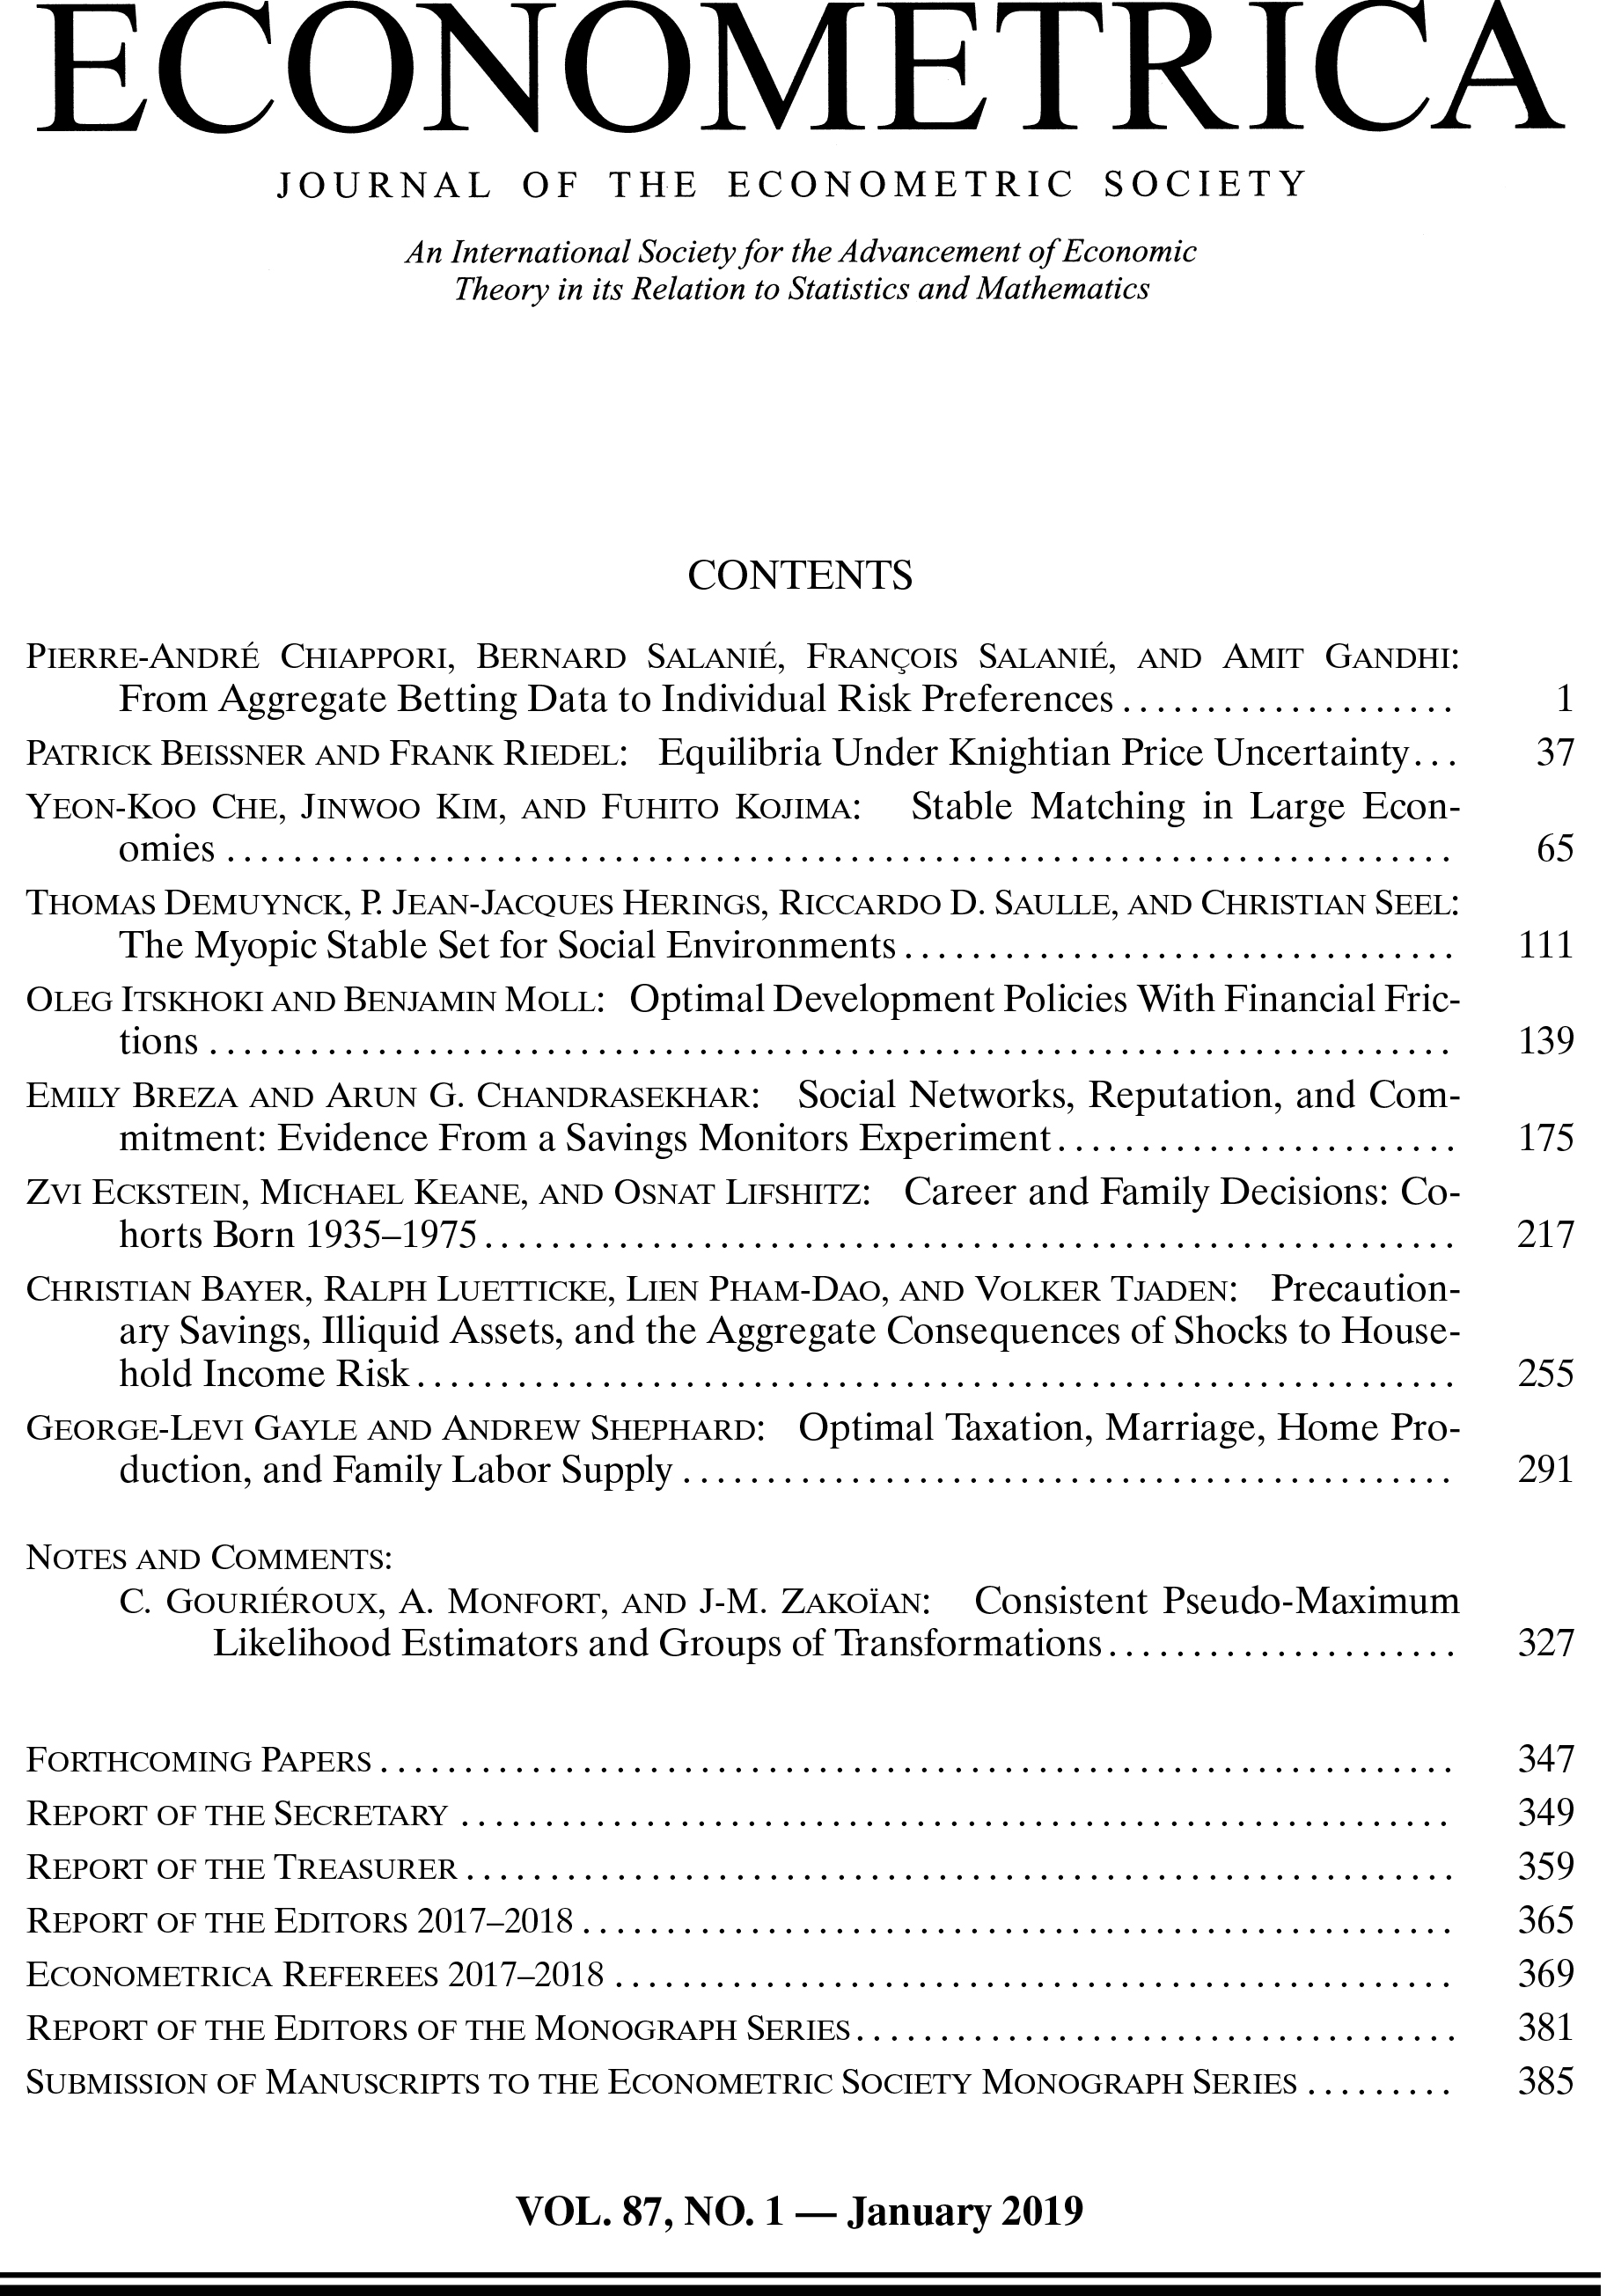 Econometrica JAN 2019, VOLUME 87, ISSUE 1, p. 1-36